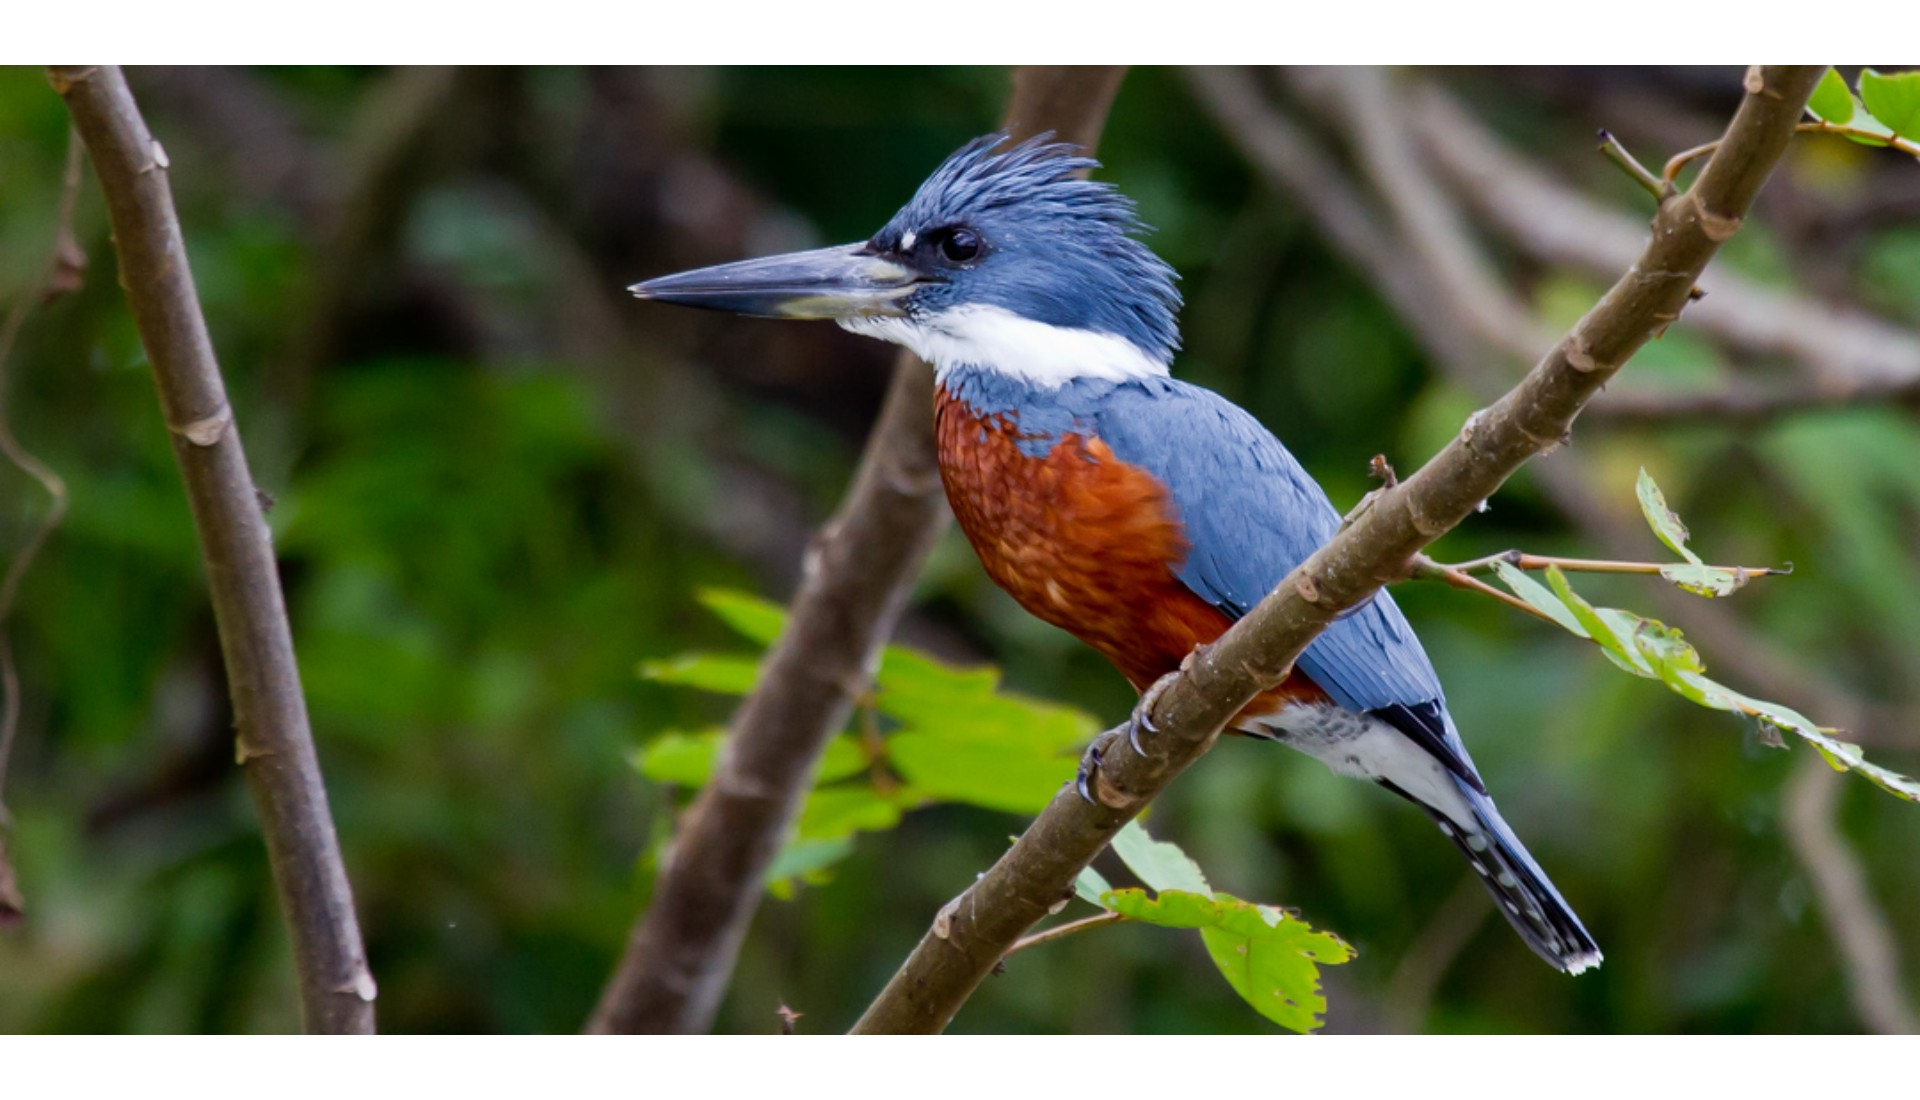 Ringed Kingfisher,  Caño Negro, Costa Rica, 2012